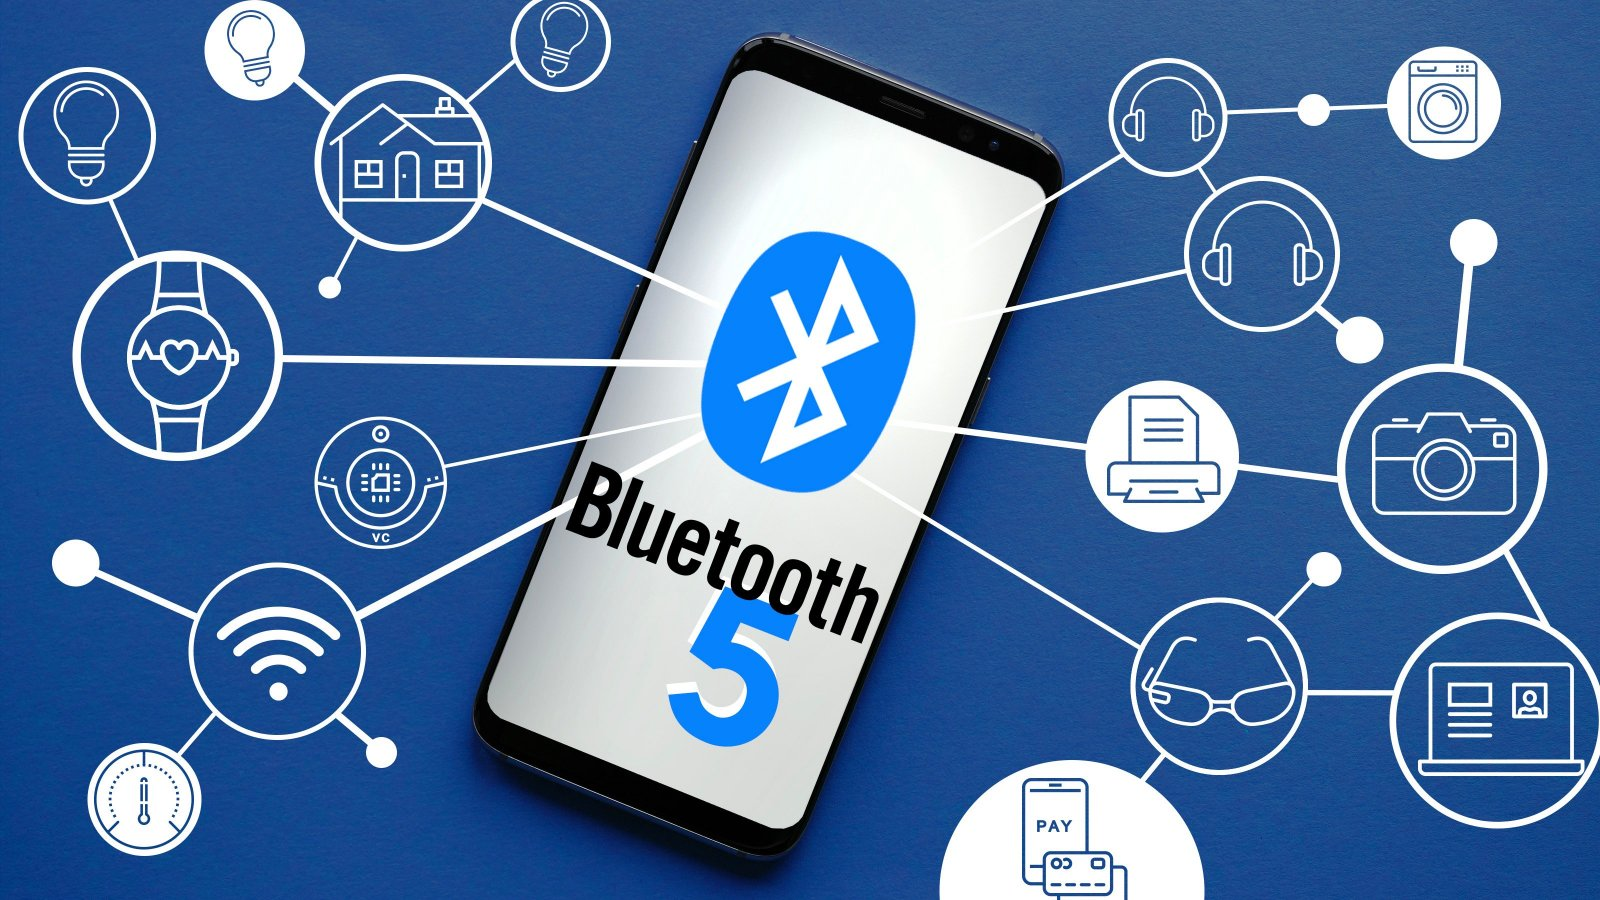 Bluetooth 5-Vernetzung